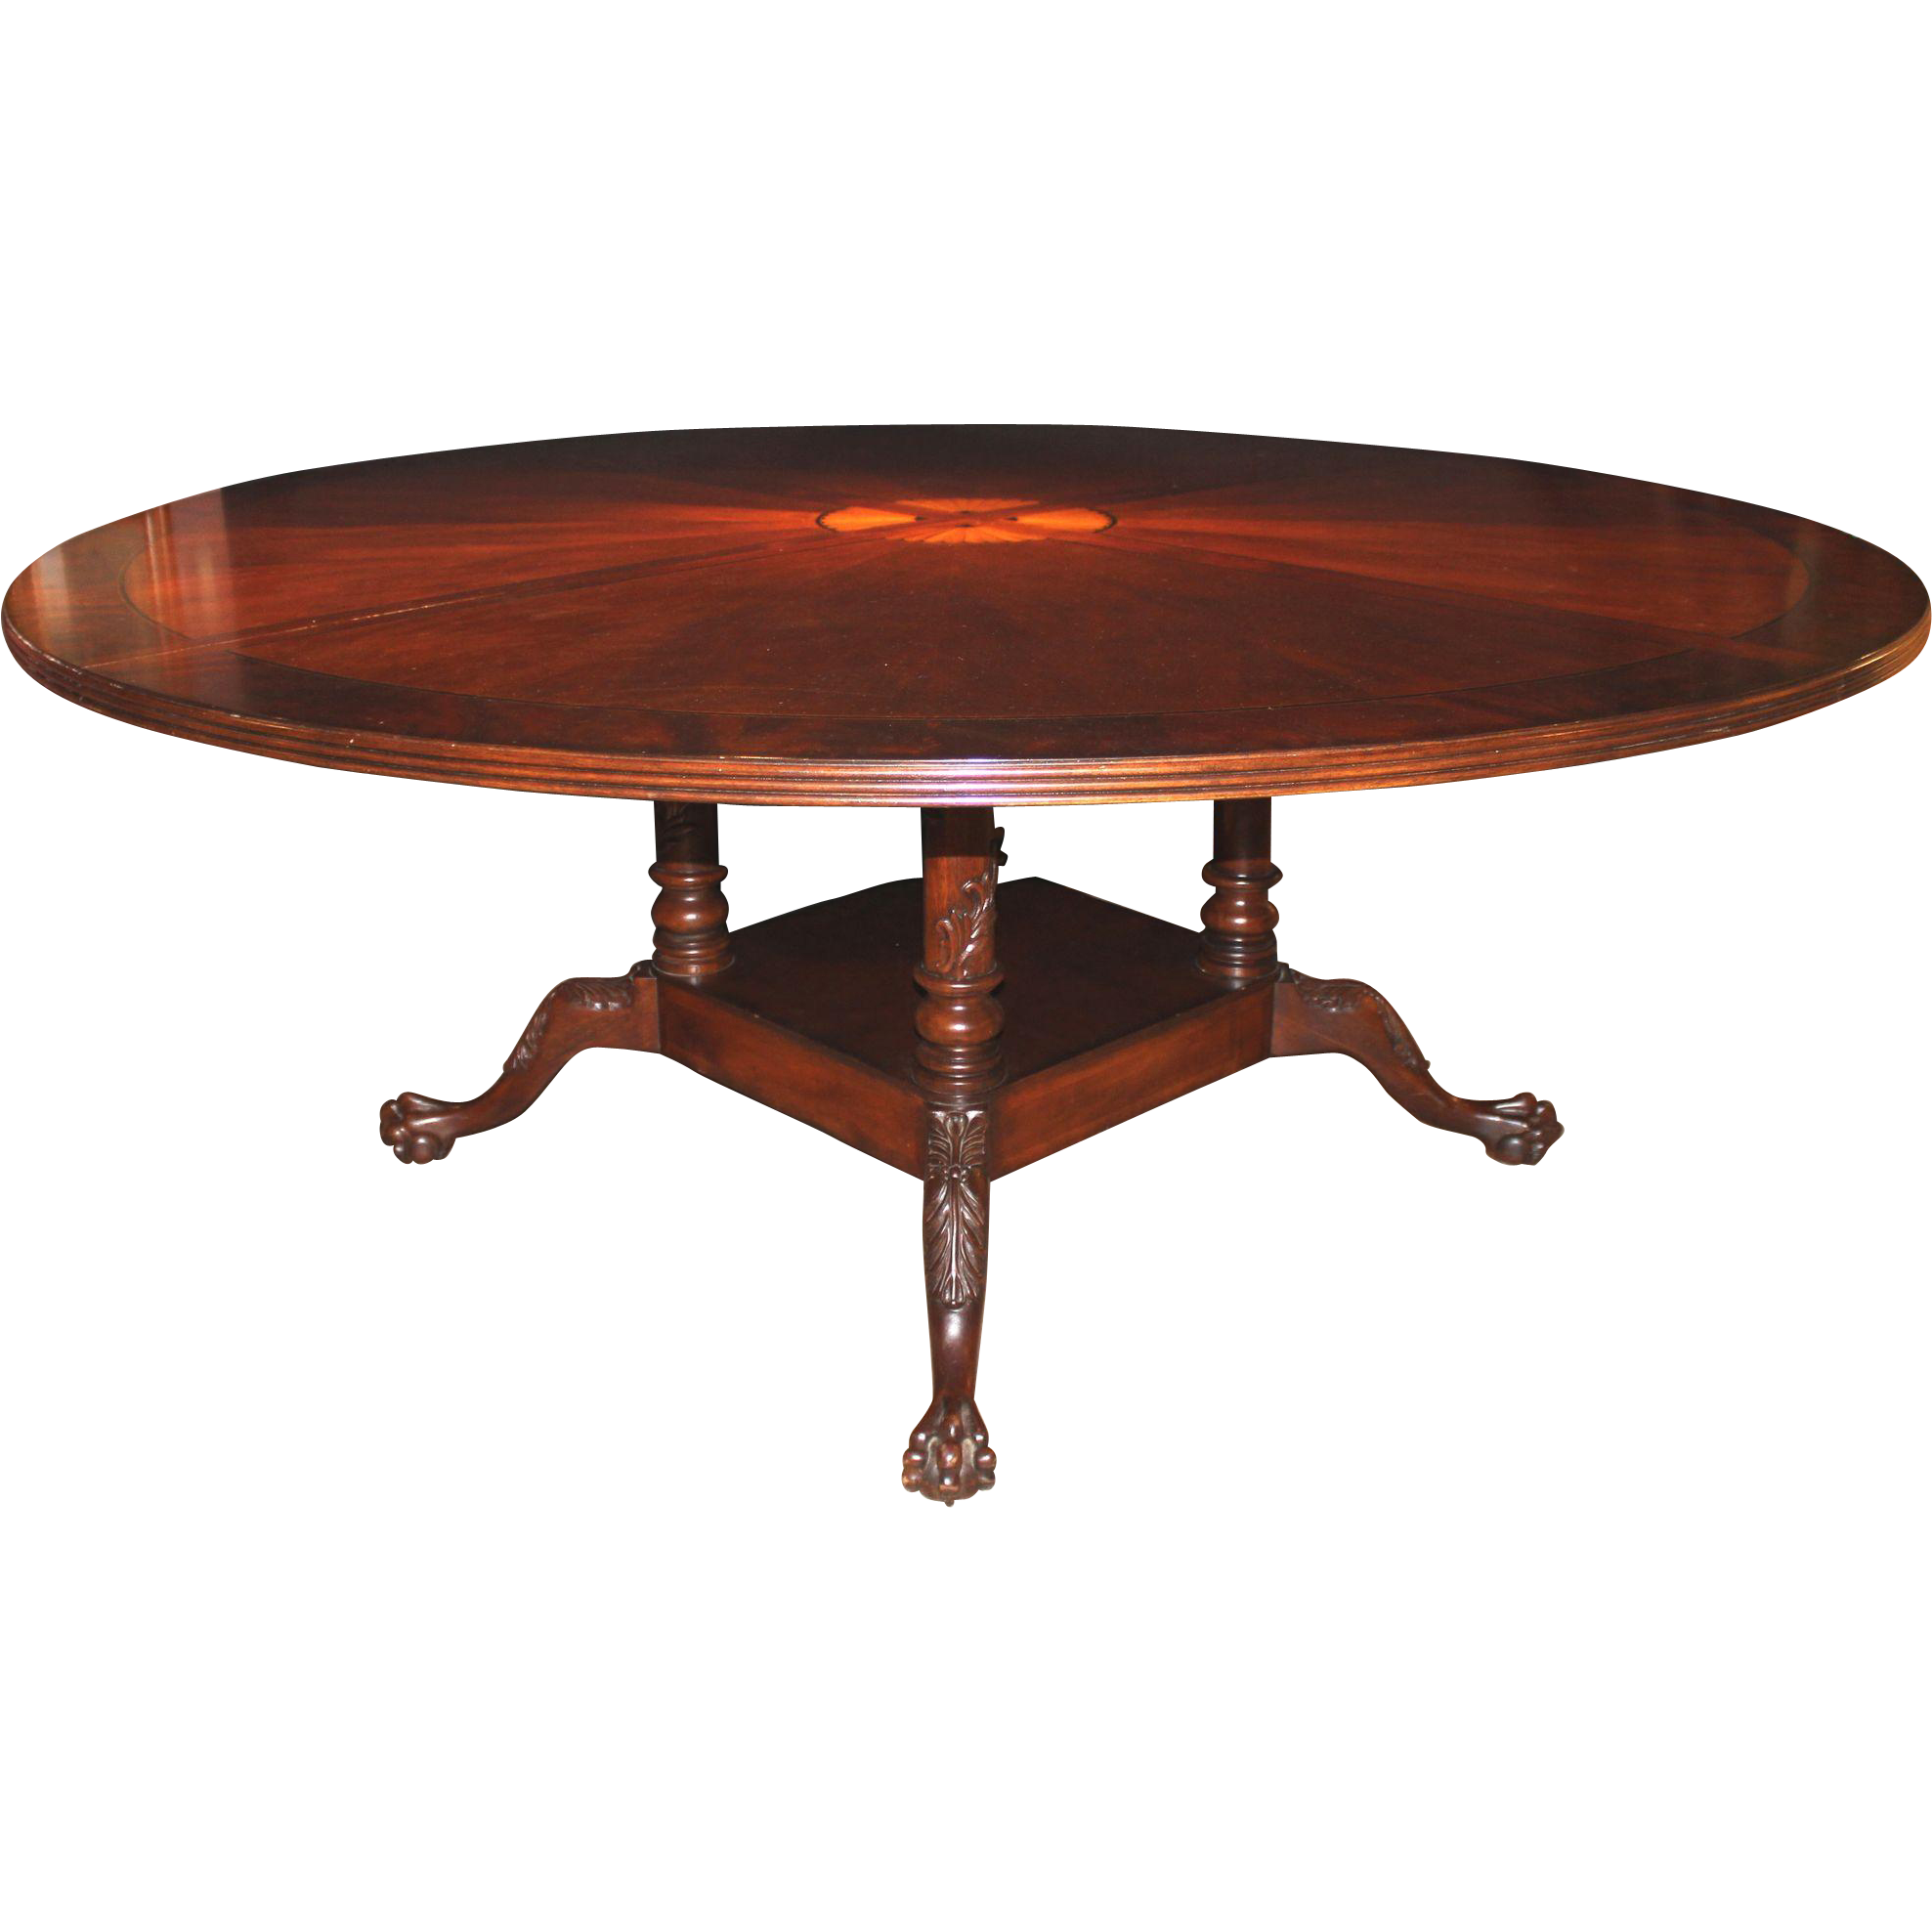 Large Round Mahogany Dining or Center Table with Radiating Fan Inlay